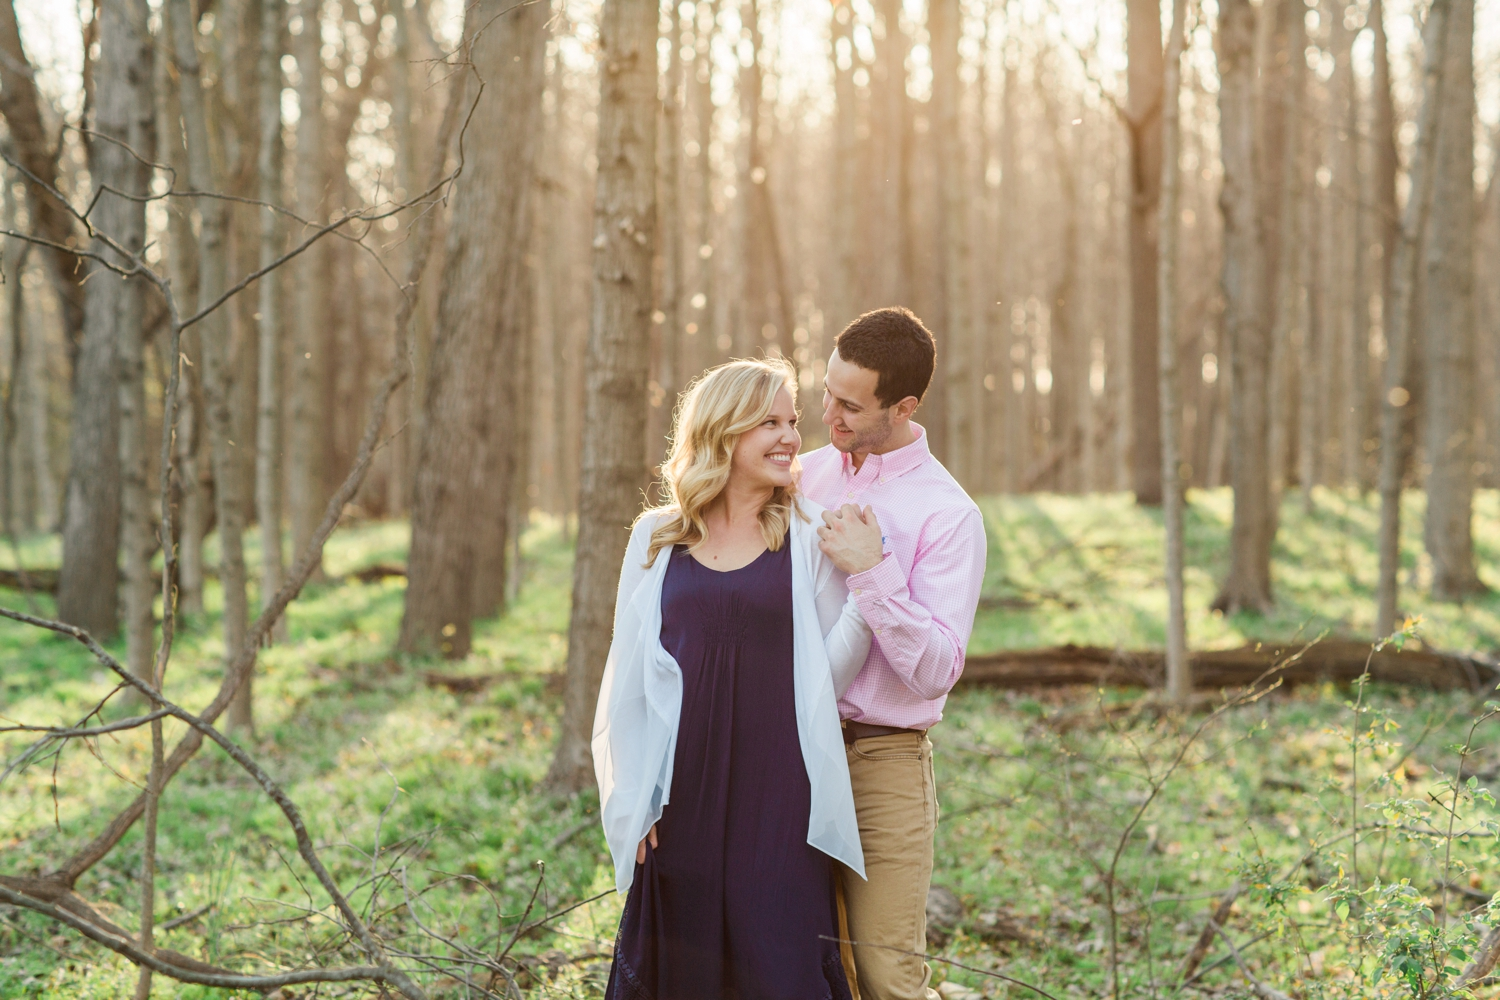 indianapolis_wedding_photographer_golden_hour_engagement_chloe_luka_photography_6115.jpg